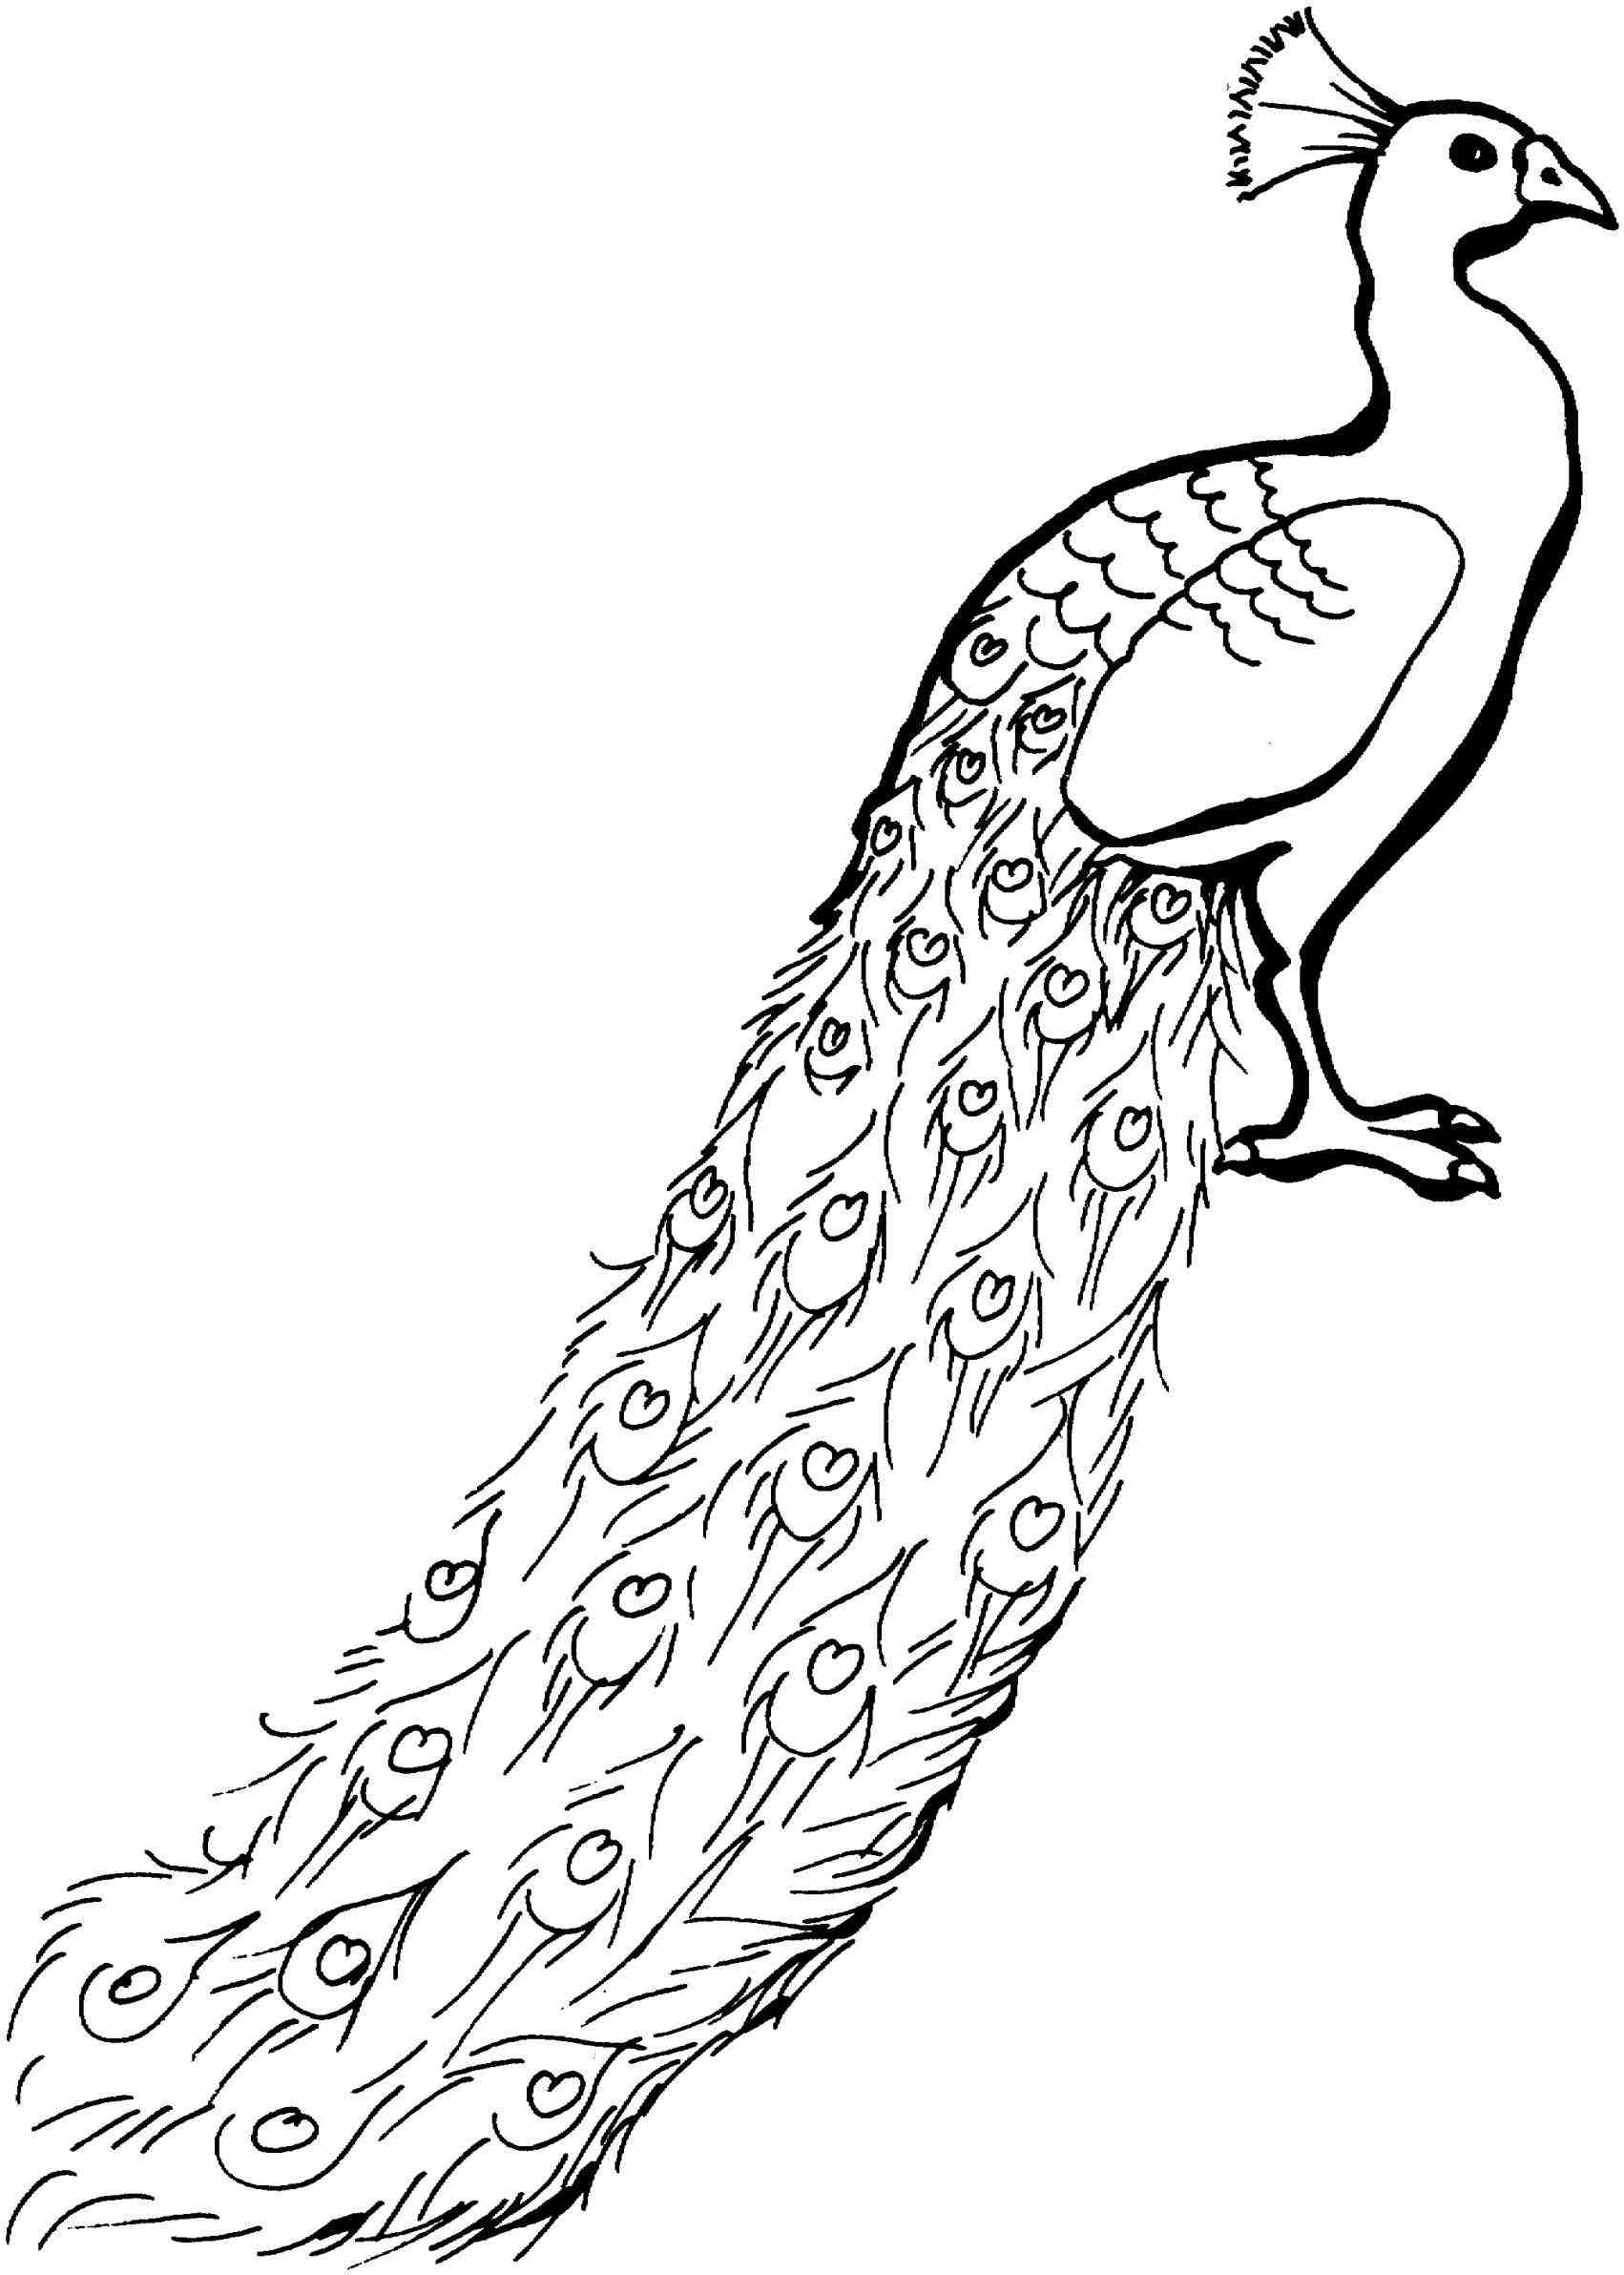 1702x2384 Peacock Black And White Drawing Peacock Drawing Black And White